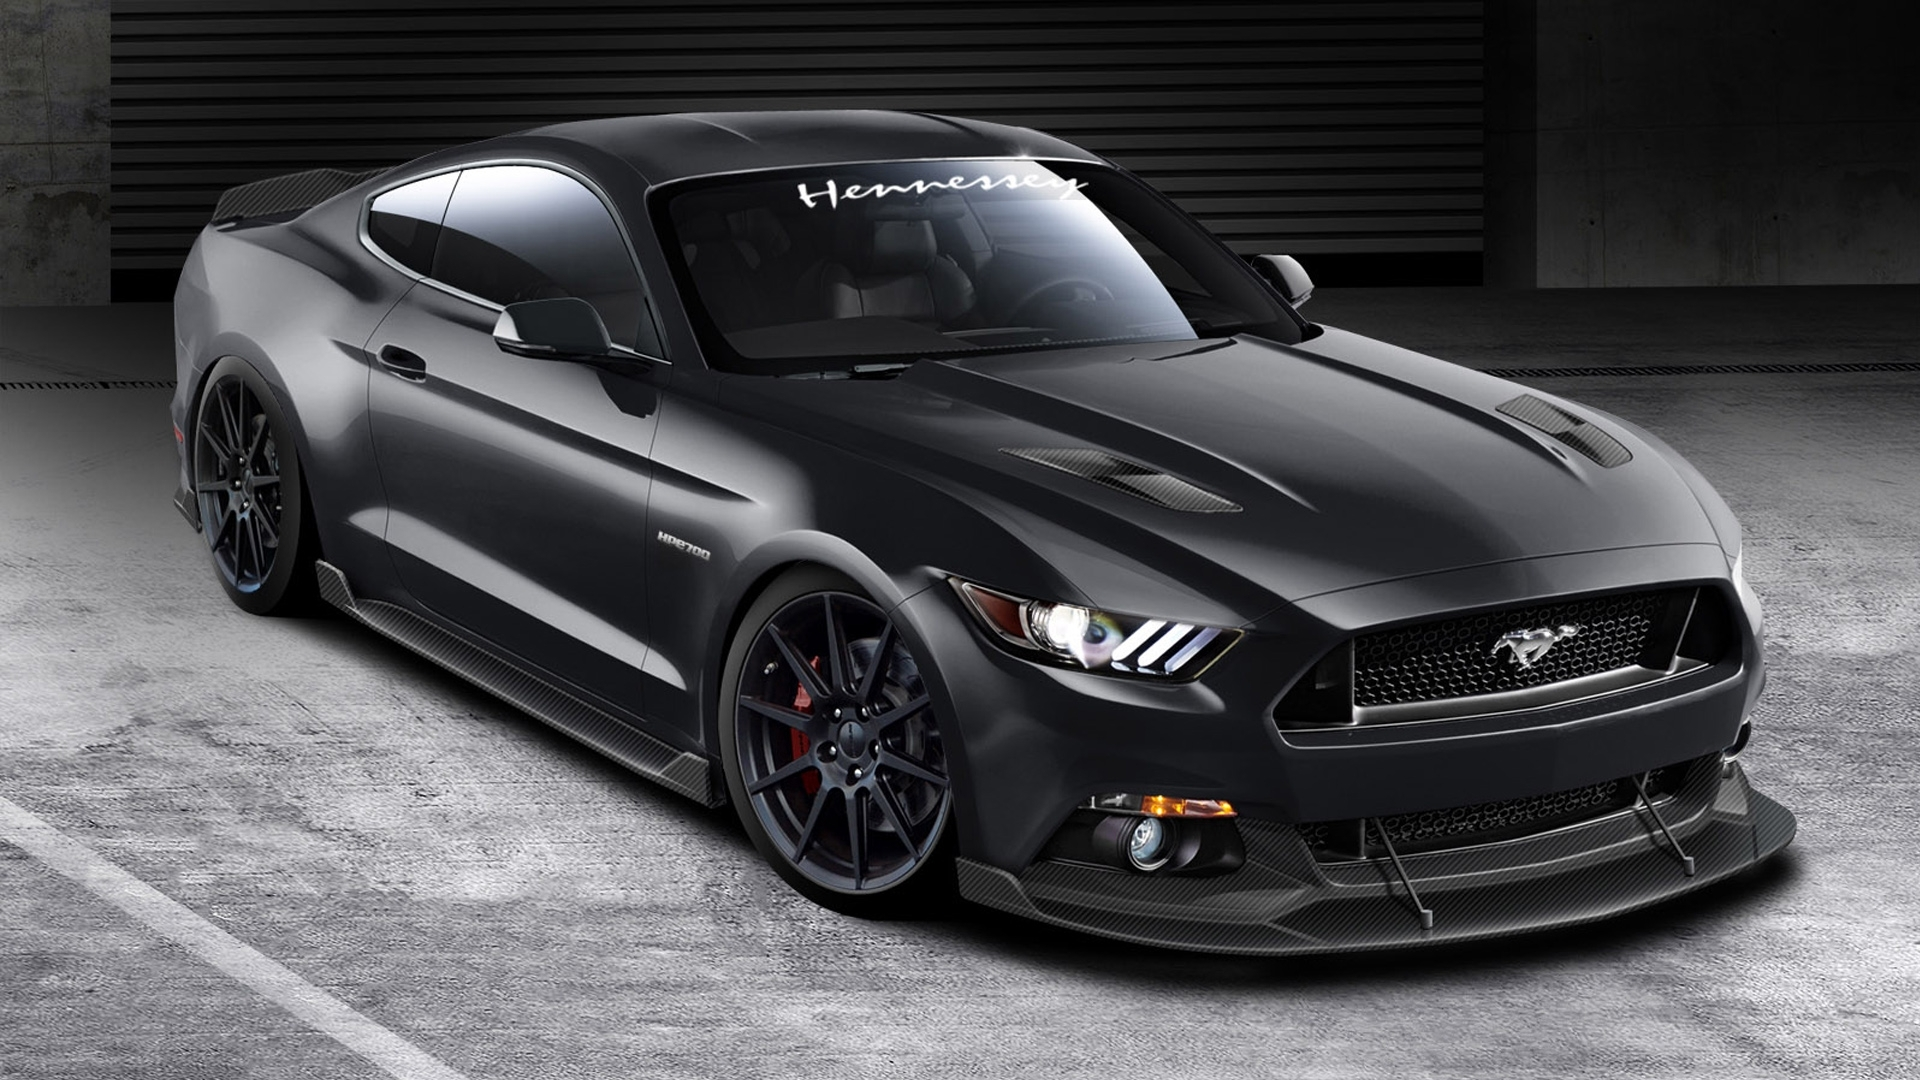 2015 hennessey ford mustang gt wallpaper | hd car wallpapers| id #4975